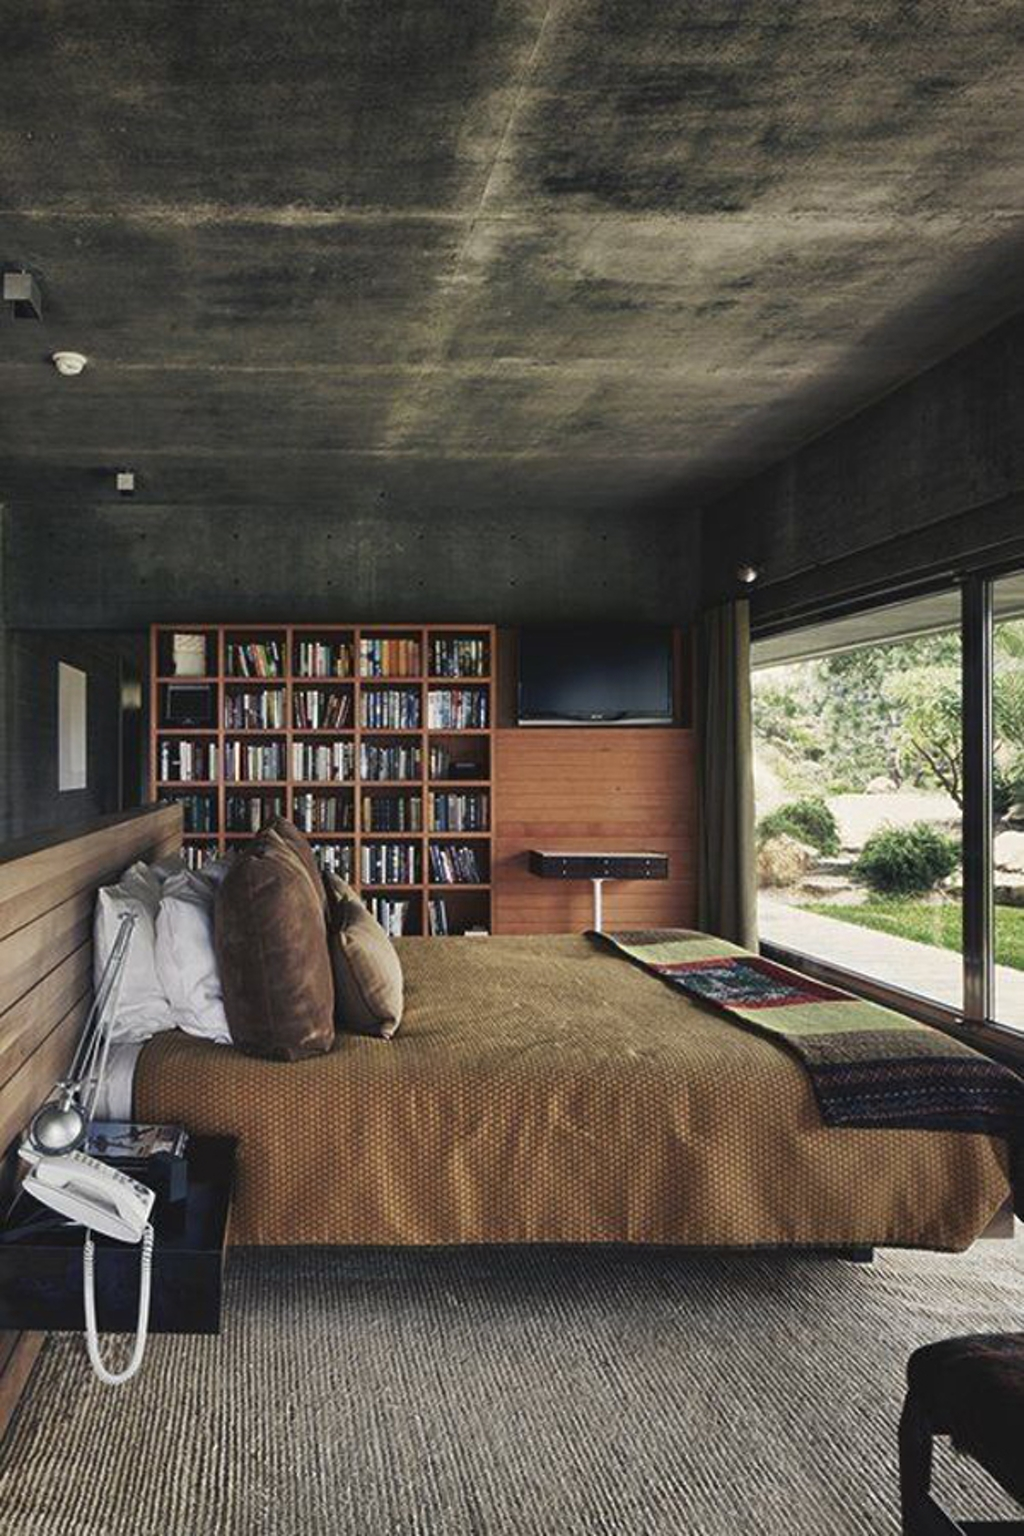 Decorating A Bachelor Pad Bedroom_6